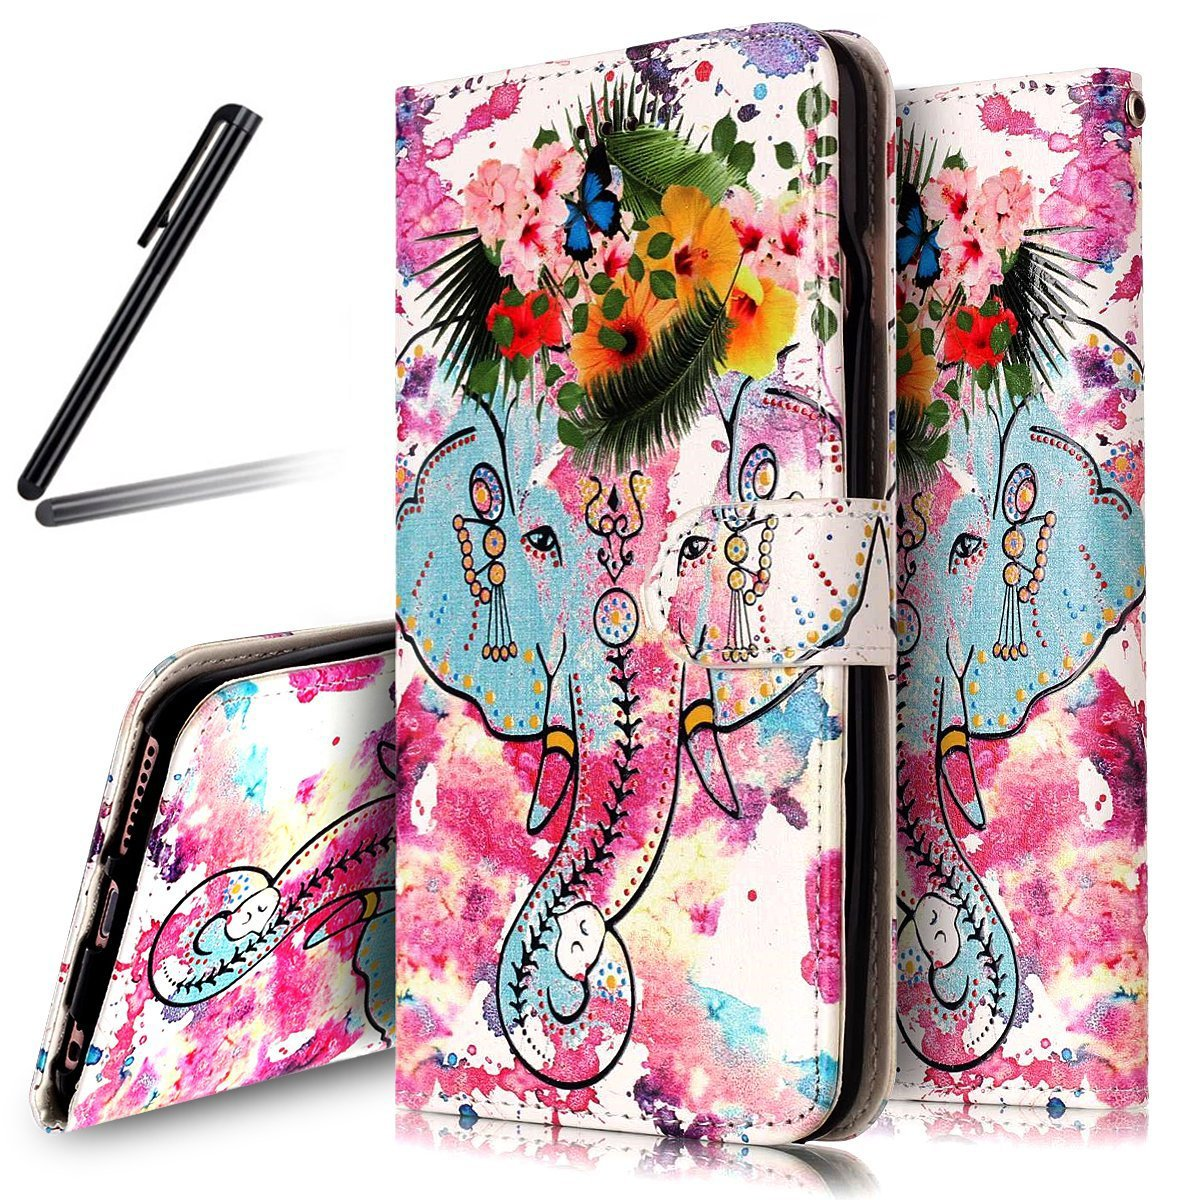 Huawei P10 Lite Case, Huawei P10 Lite Wallet Case, Huawei P10 Lite PU Flip Stand Case, SKYMARS Huawei P10 Lite Cover Gloss Skin 3D Creative Design PU Leather Flip Kickstand Cards Slot Wallet Magnet Stand Fit Case for Huawei P10 Lite Flower Elephant